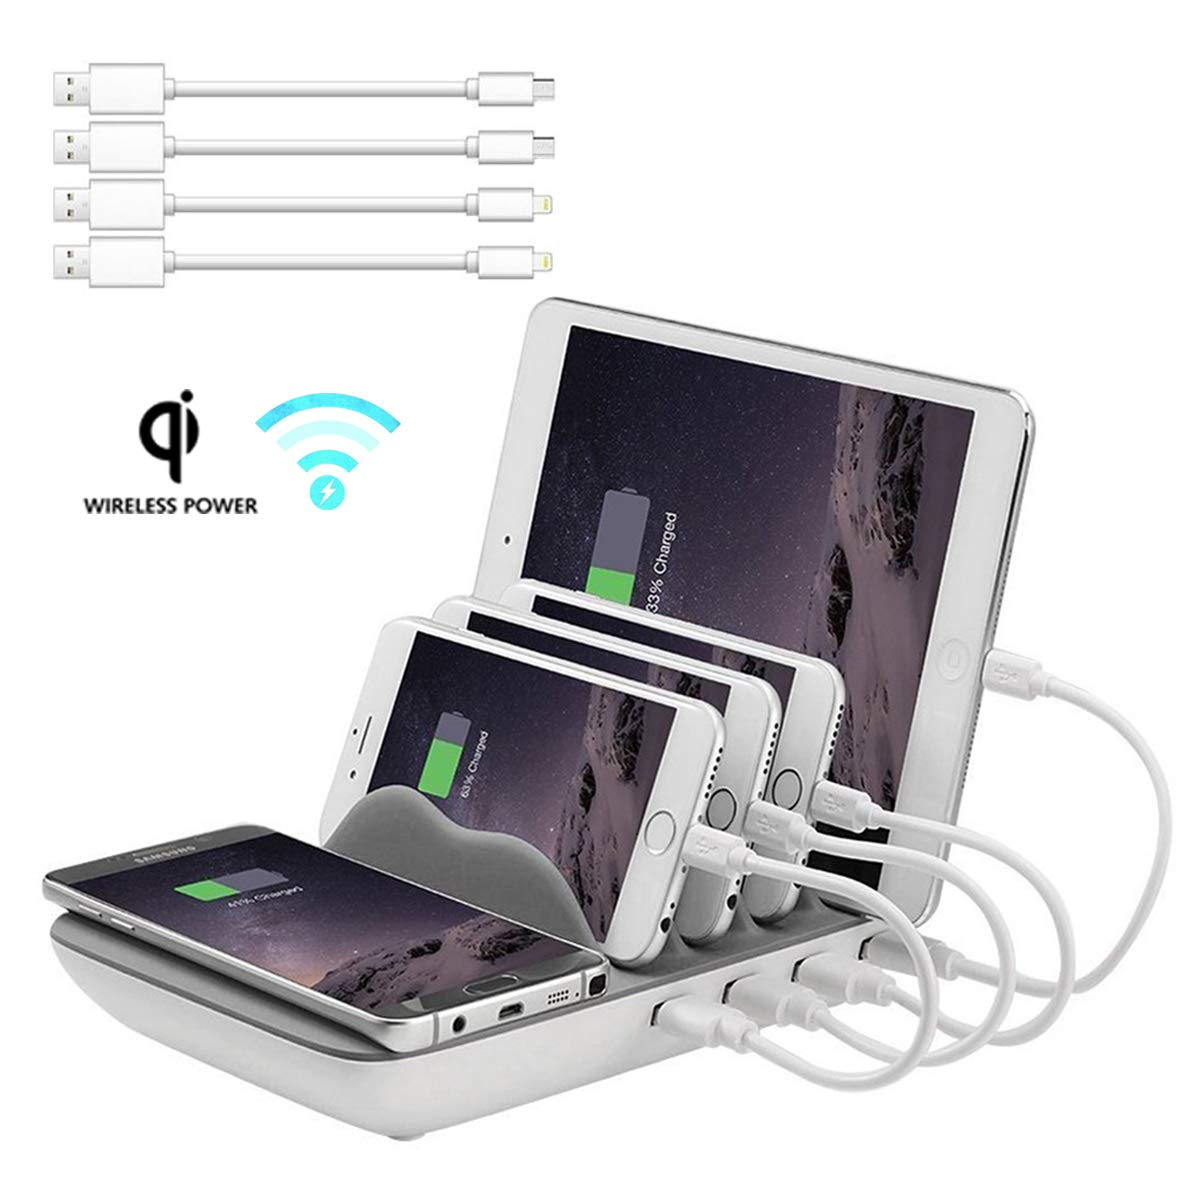 Faster Charging Station, Hometall 5-in-1 Multiple Phone Dock Stand with 4 USB Ports(Free 4 Cables) and 1 QI Wireless Charging Pad, Compatible for Samsung, iPhone, IPads,Other Electronics(Grey)